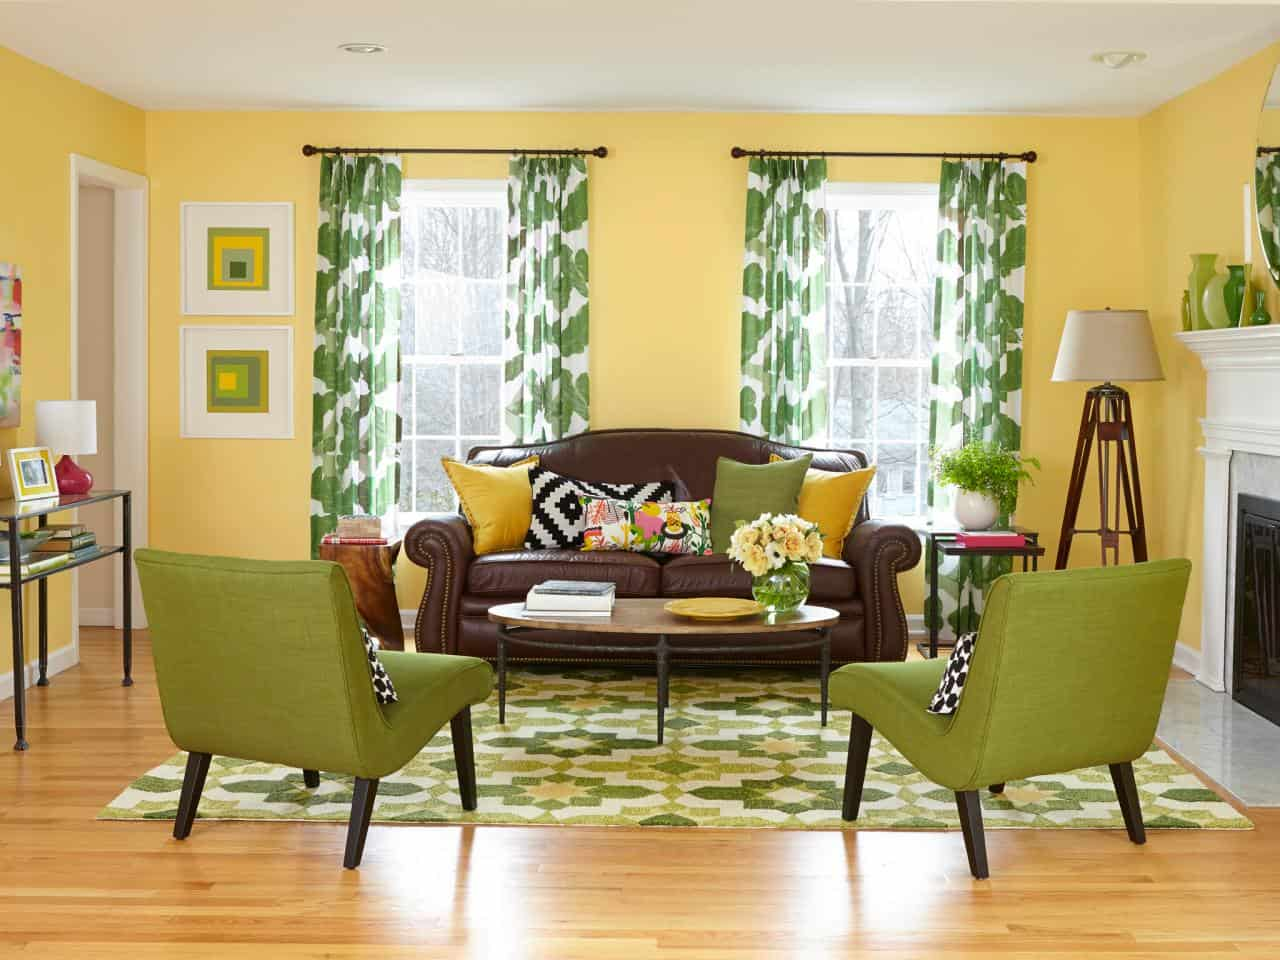 15 Fun Tips for Decorating Your Home with Green